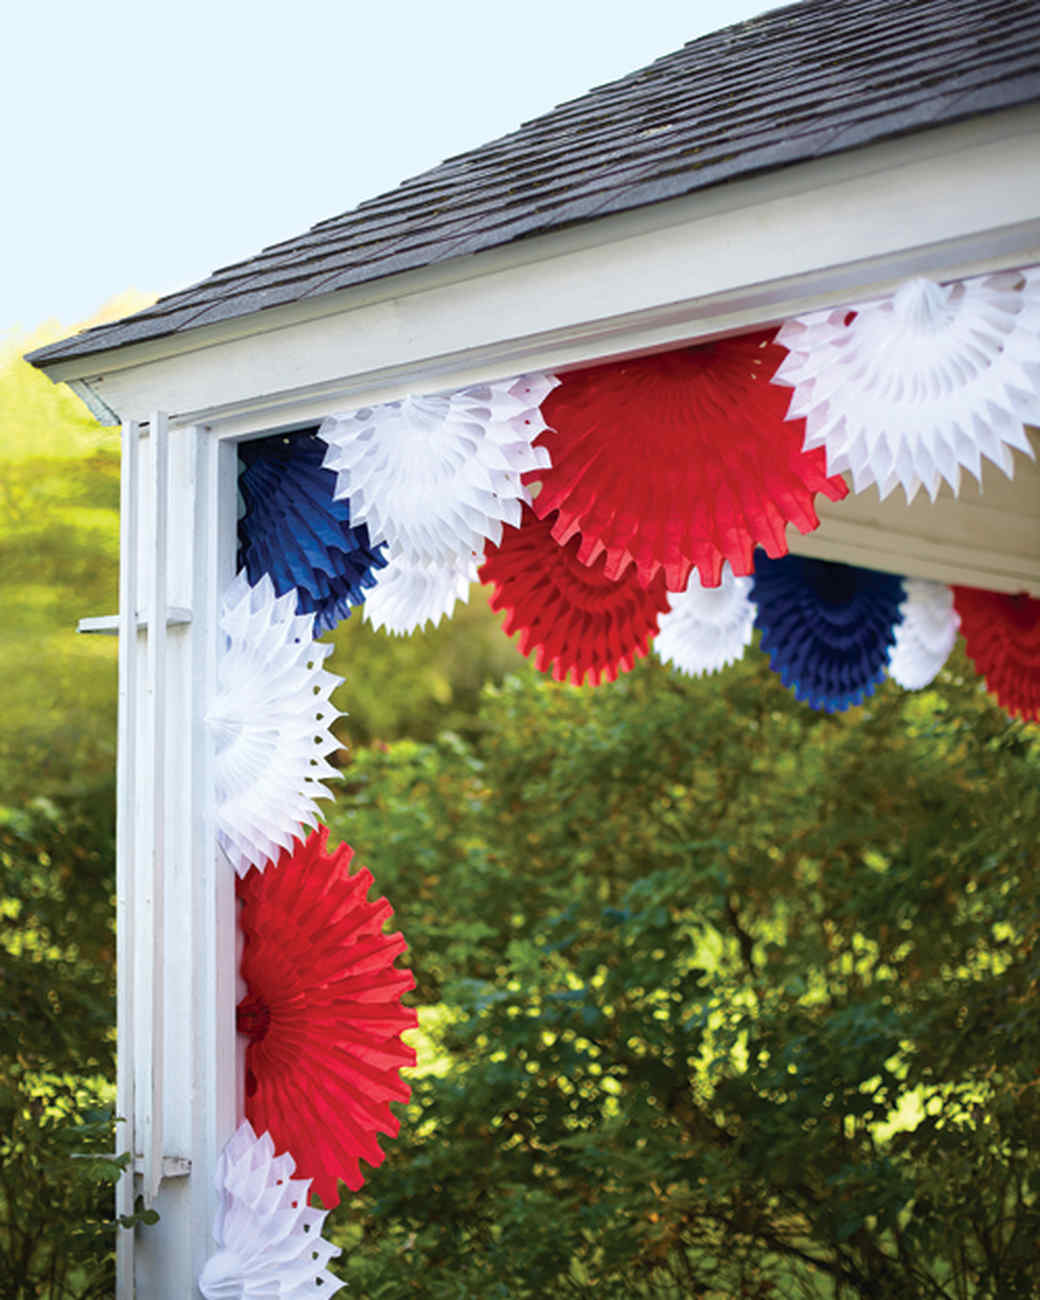 4th of July Decorations: Show Your Red, White, and Blue | Martha ...